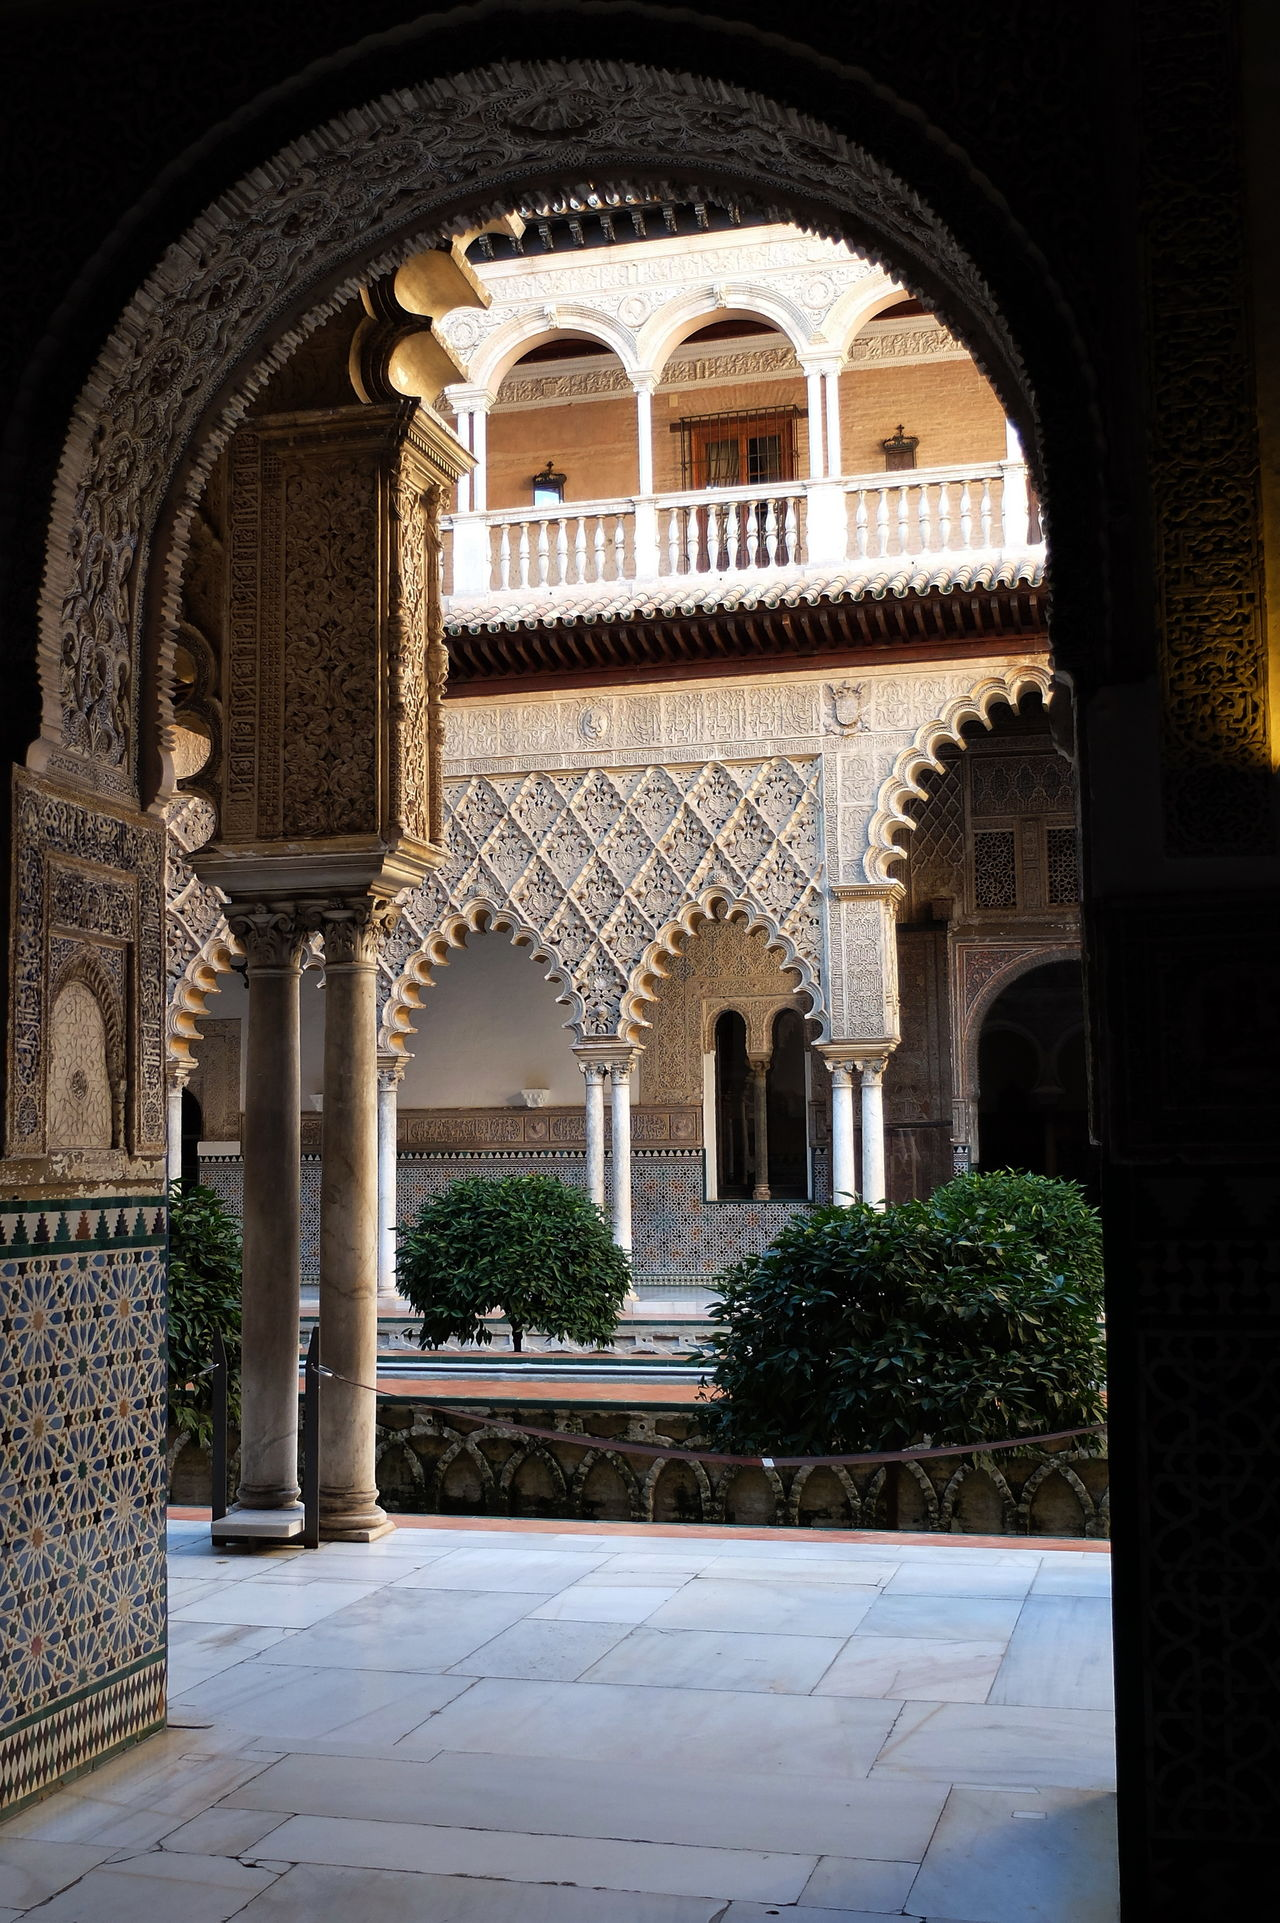 Jardines 2 Alcazar Arch Architecture Building Exterior Built Structure Day History Jardines De Alcazar Jardines Secretos No People Outdoors Place Of Worship Sevilla Travel Destinations